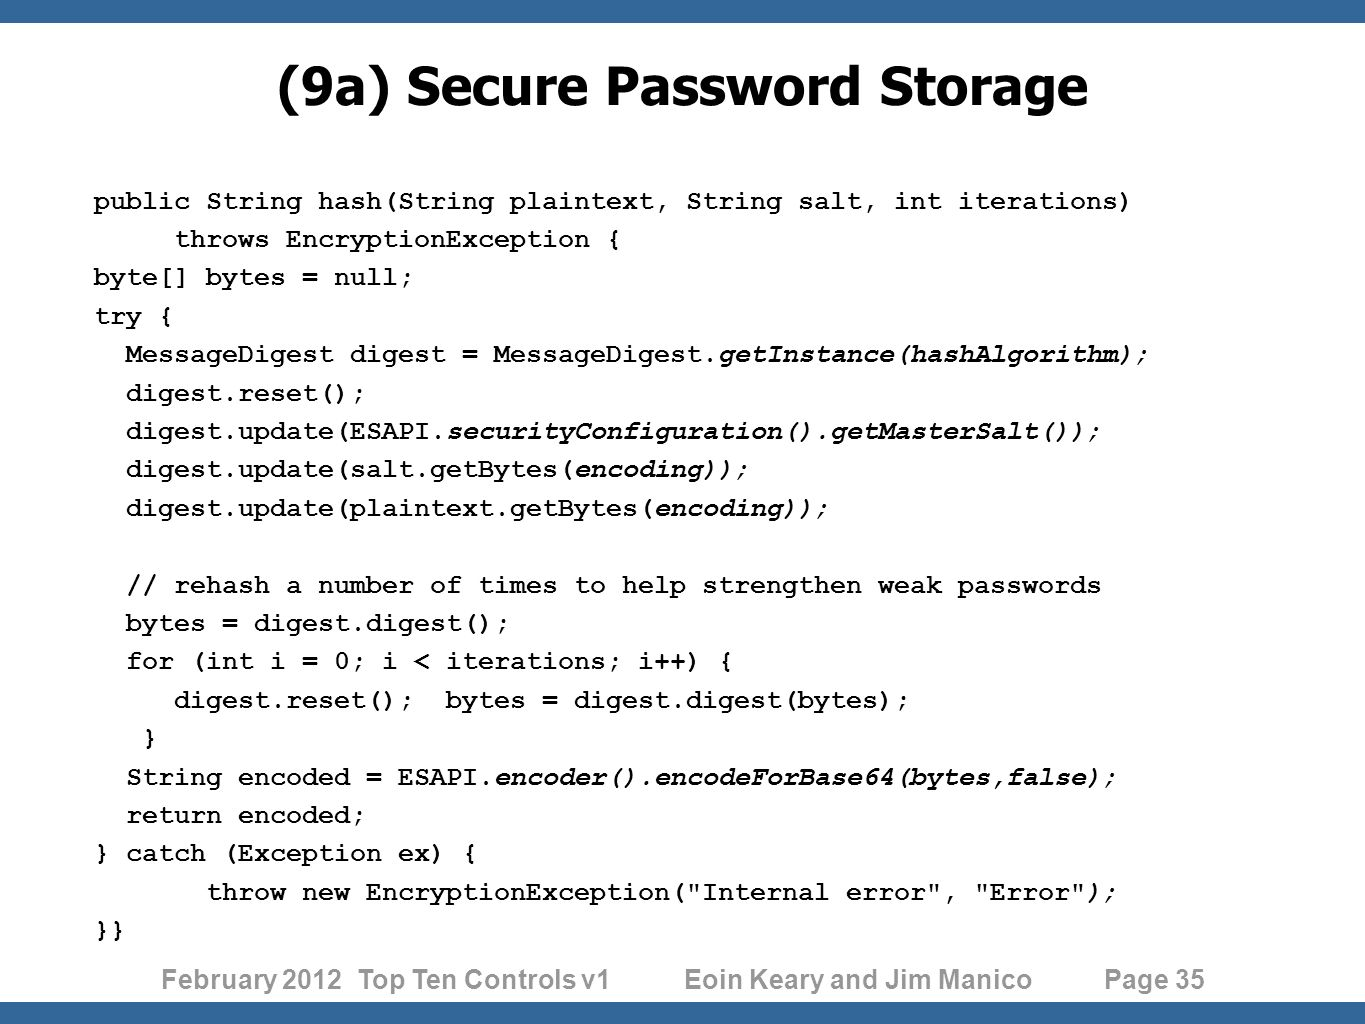 February 2012 Top Ten Controls v1 Eoin Keary and Jim Manico Page 35 (9a) Secure Password Storage public String hash(String plaintext, String salt, int iterations) throws EncryptionException { byte[] bytes = null; try { MessageDigest digest = MessageDigest.getInstance(hashAlgorithm); digest.reset(); digest.update(ESAPI.securityConfiguration().getMasterSalt()); digest.update(salt.getBytes(encoding)); digest.update(plaintext.getBytes(encoding)); // rehash a number of times to help strengthen weak passwords bytes = digest.digest(); for (int i = 0; i < iterations; i++) { digest.reset(); bytes = digest.digest(bytes); } String encoded = ESAPI.encoder().encodeForBase64(bytes,false); return encoded; } catch (Exception ex) { throw new EncryptionException( Internal error , Error ); }}